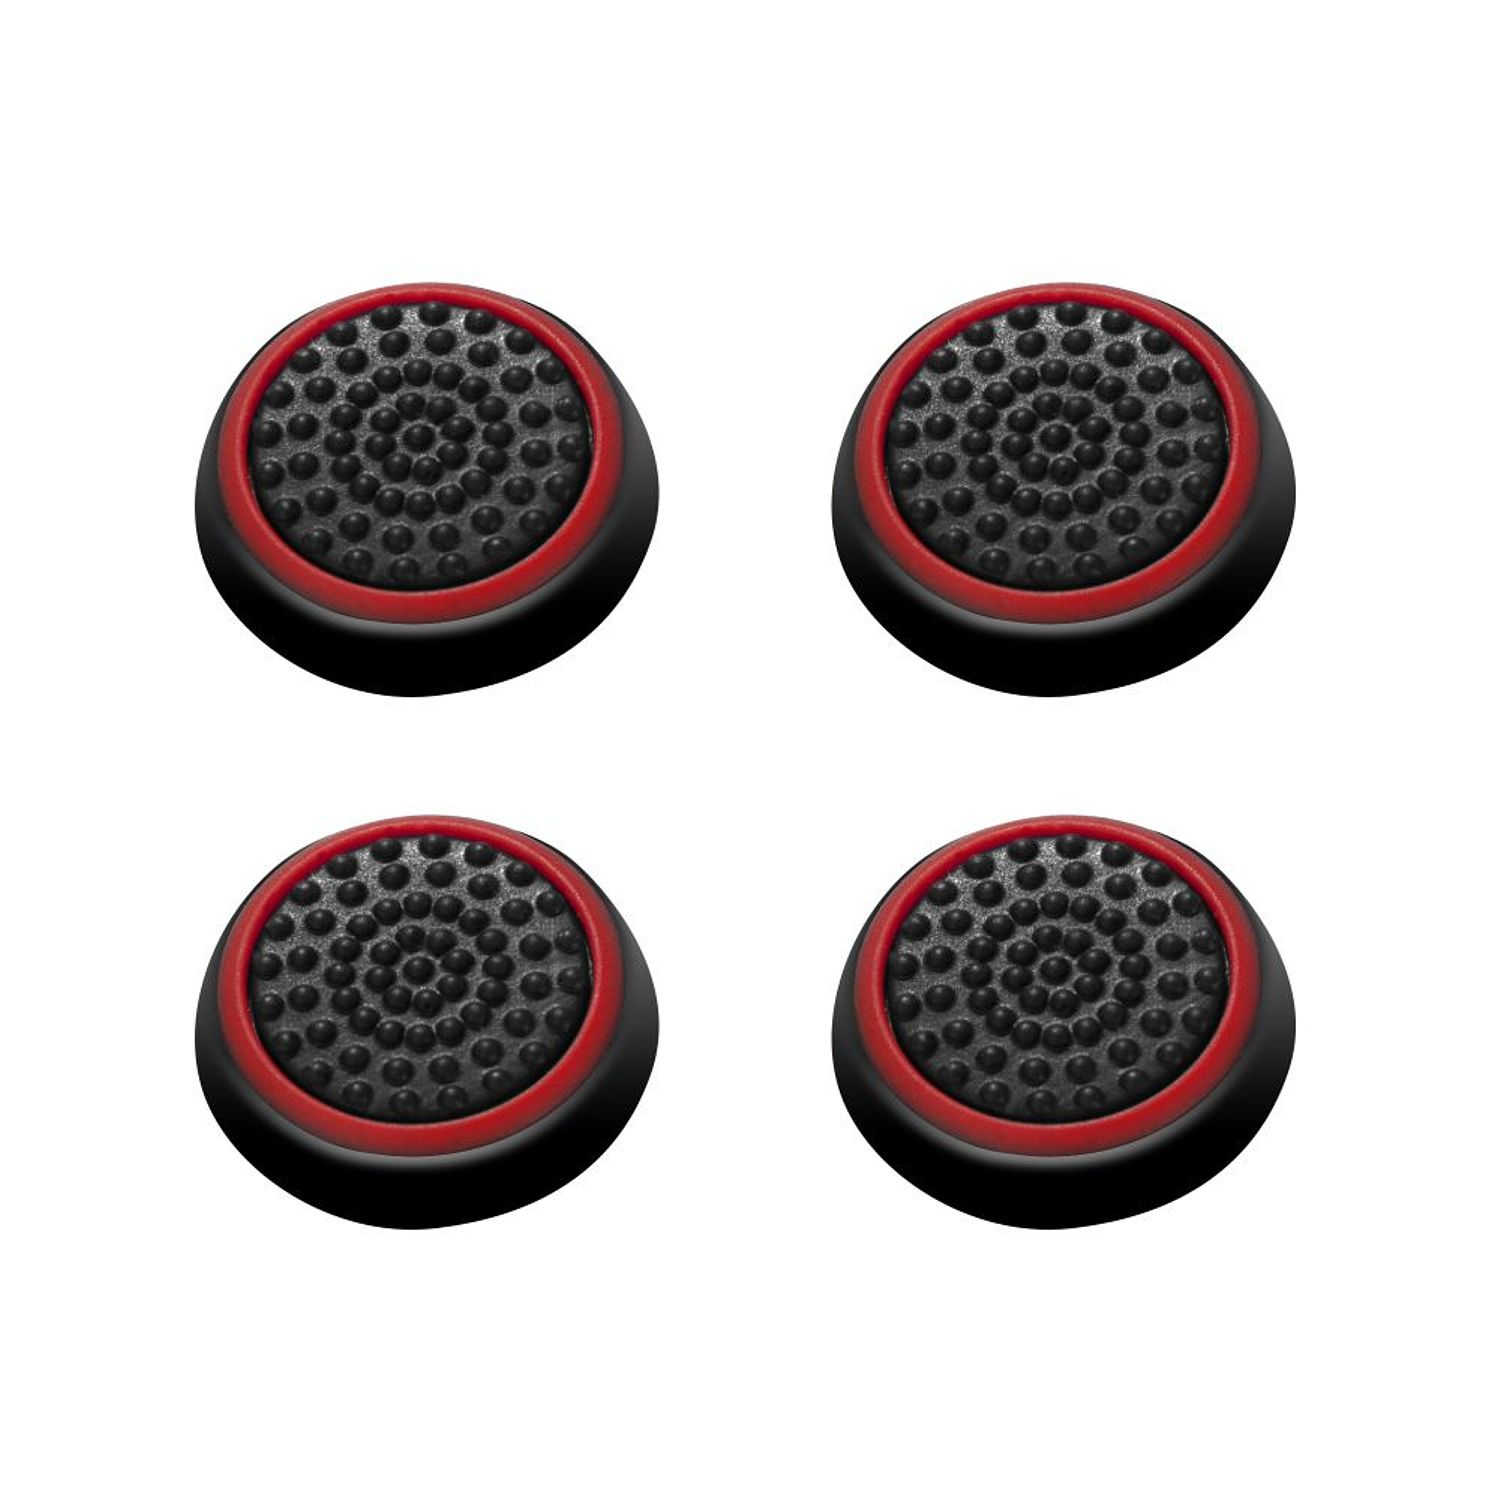 Insten 4pcs Black/Red Silicone Thumb Thumbstick Grips Analog Stick Cover Caps for Xbox 360 Xbox One PS4 PS3 PS2 Sony PlayStation 2 3 4 Controller